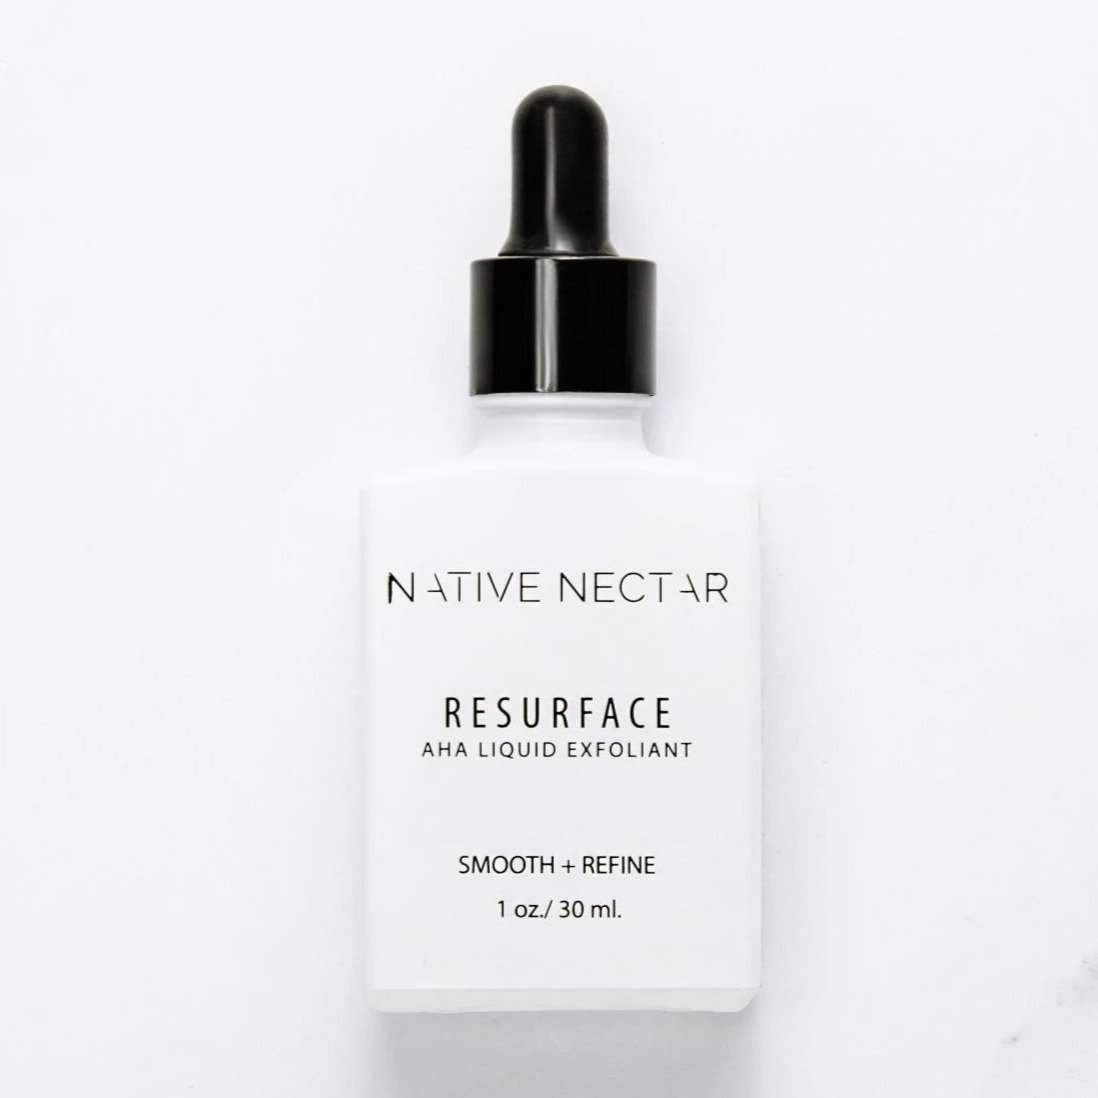 Jiyubox: Resurface AHA Liquid Exfoliant by Native Nectar Botanicals